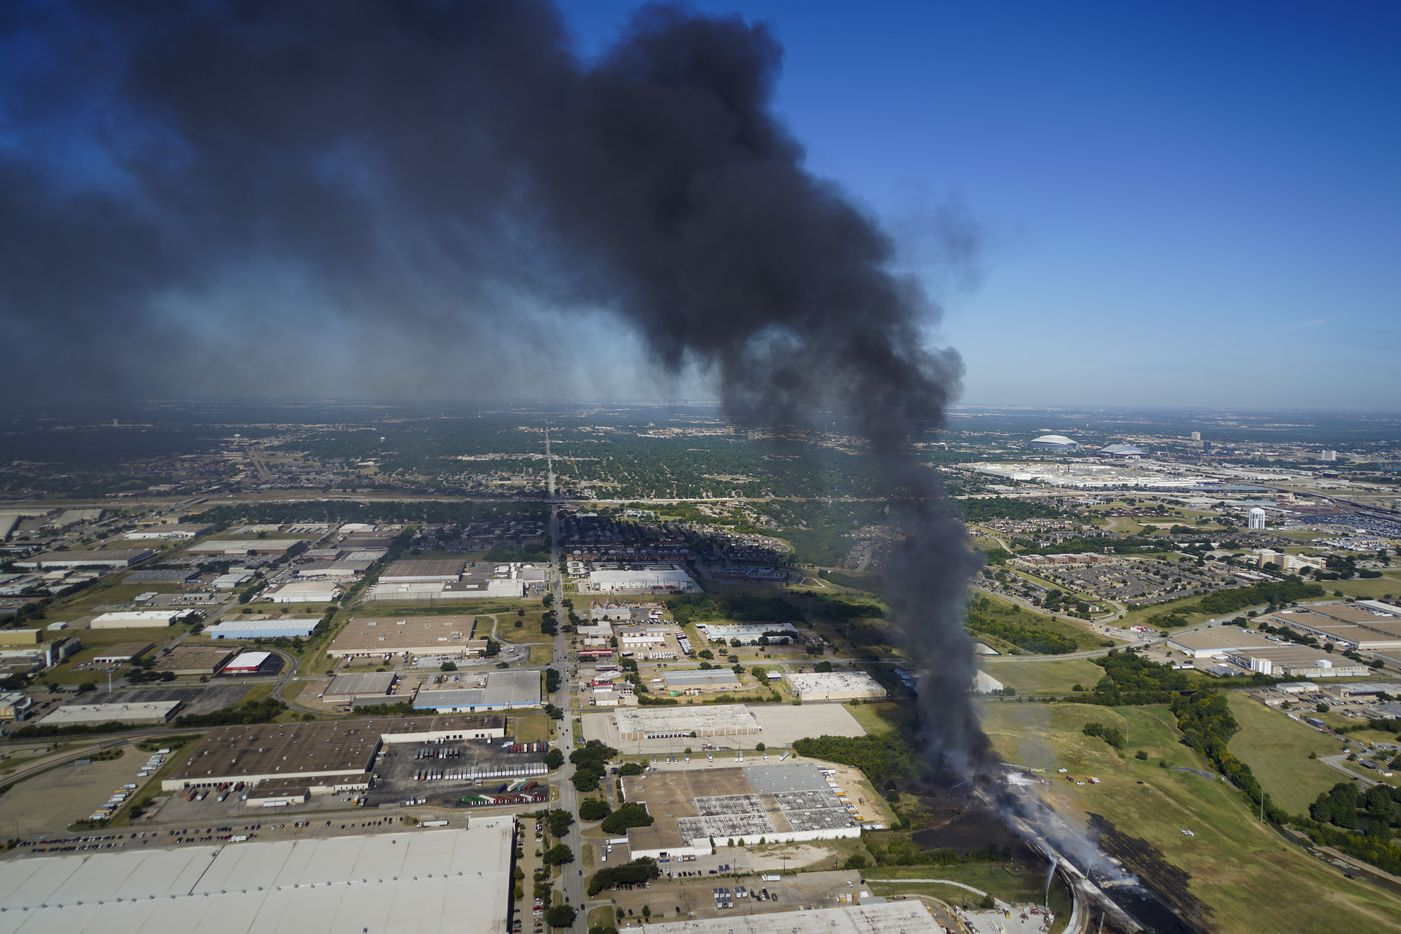 Aerial view of fire crews working at the site of a massive blaze in an industrial area on Wednesday, Aug. 19, 2020 in of Grand Prairie, Texas.